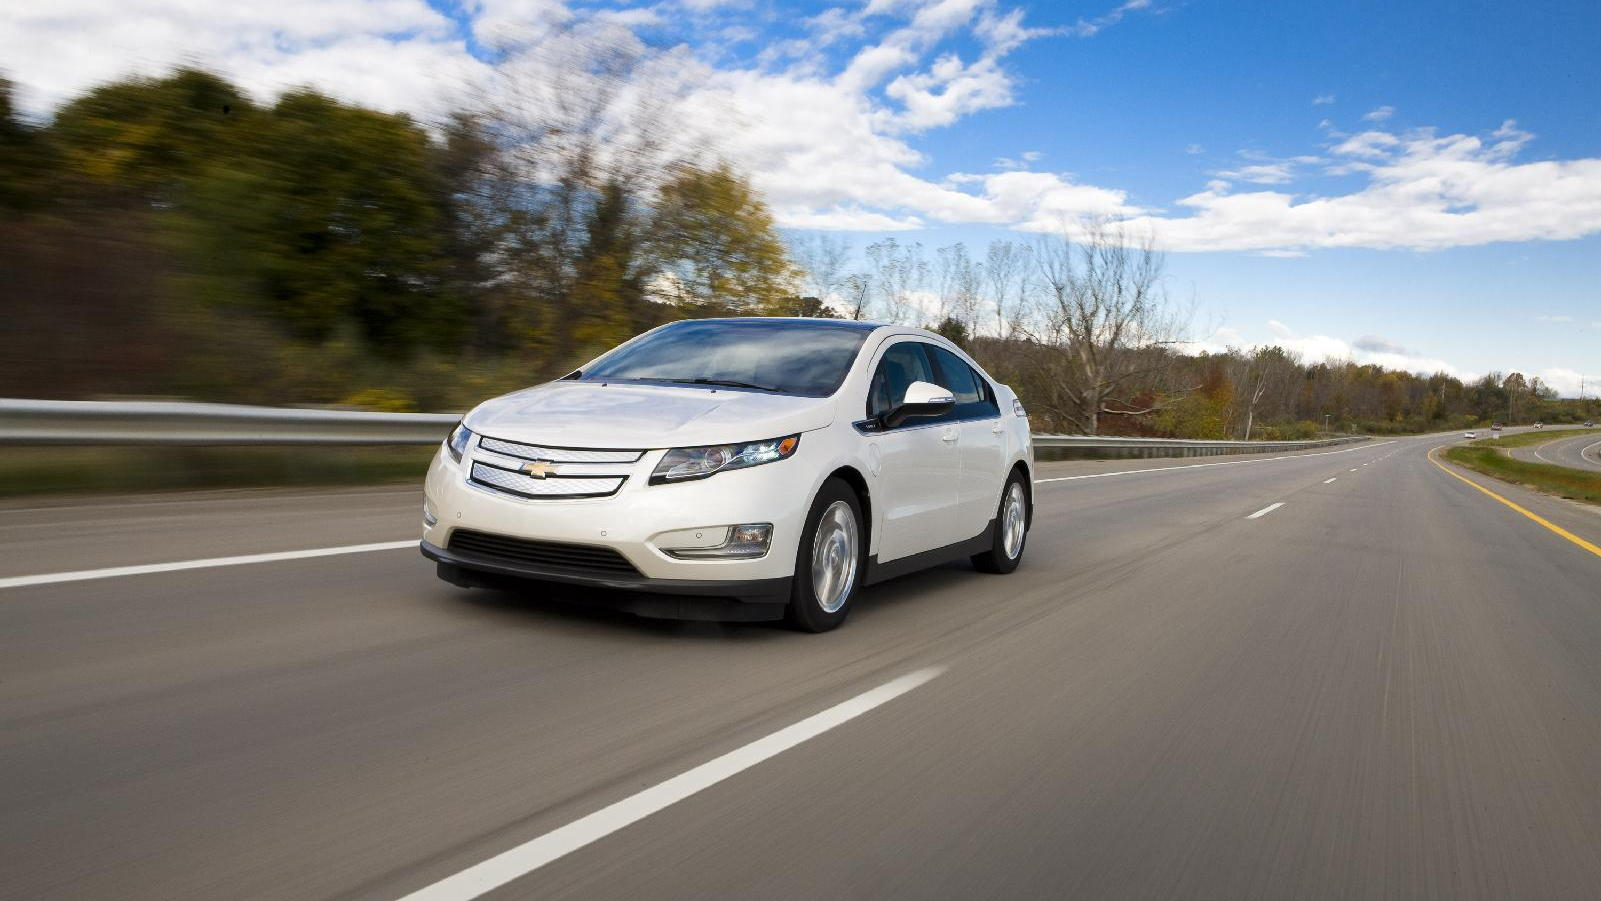 How Much More Does It Cost To Repair A Crashed Chevy Volt?